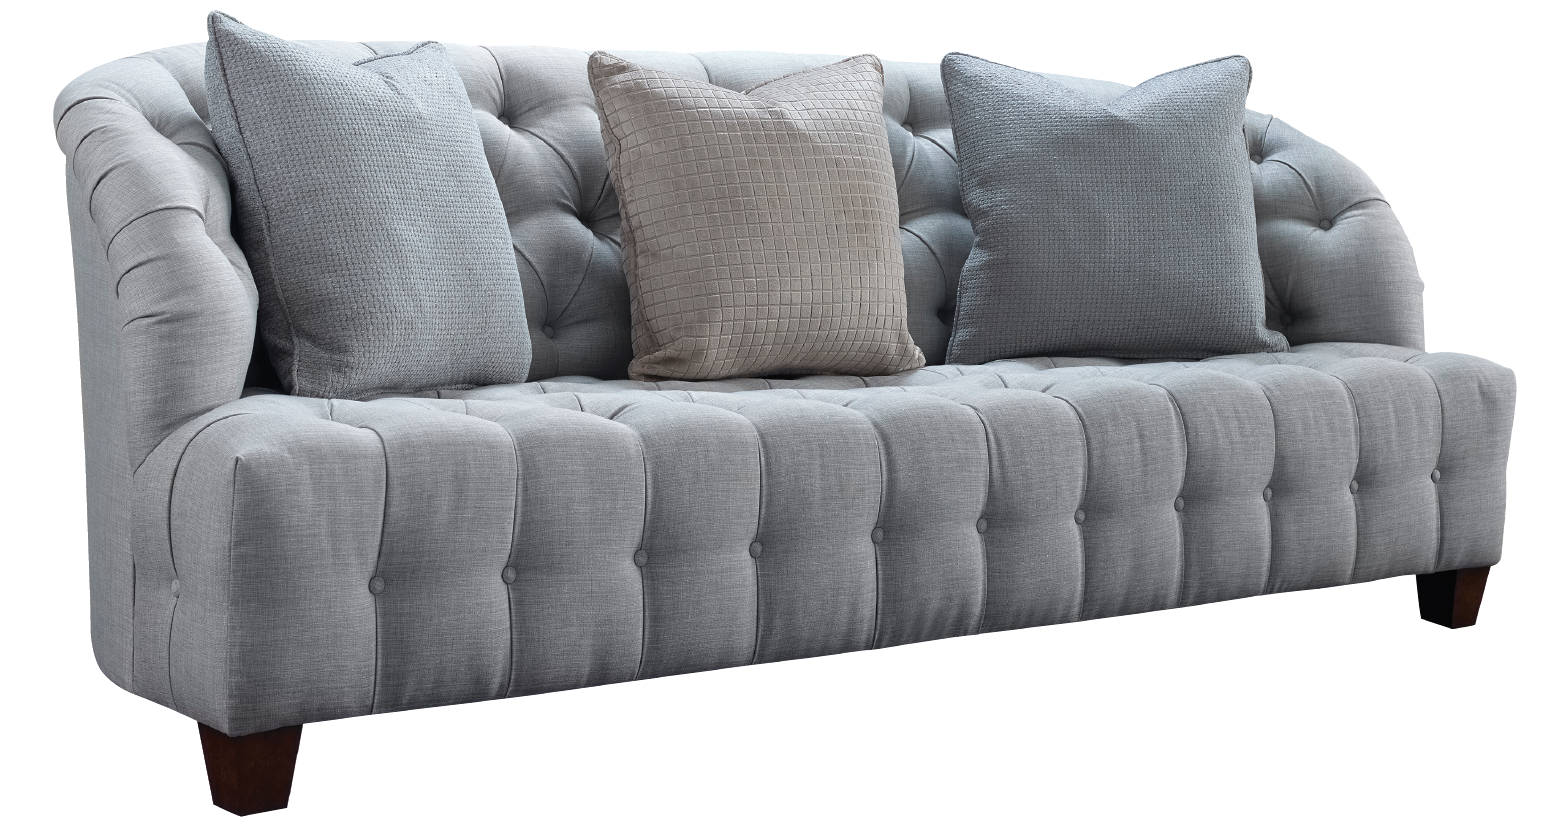 chaddock-cc-couch-pic